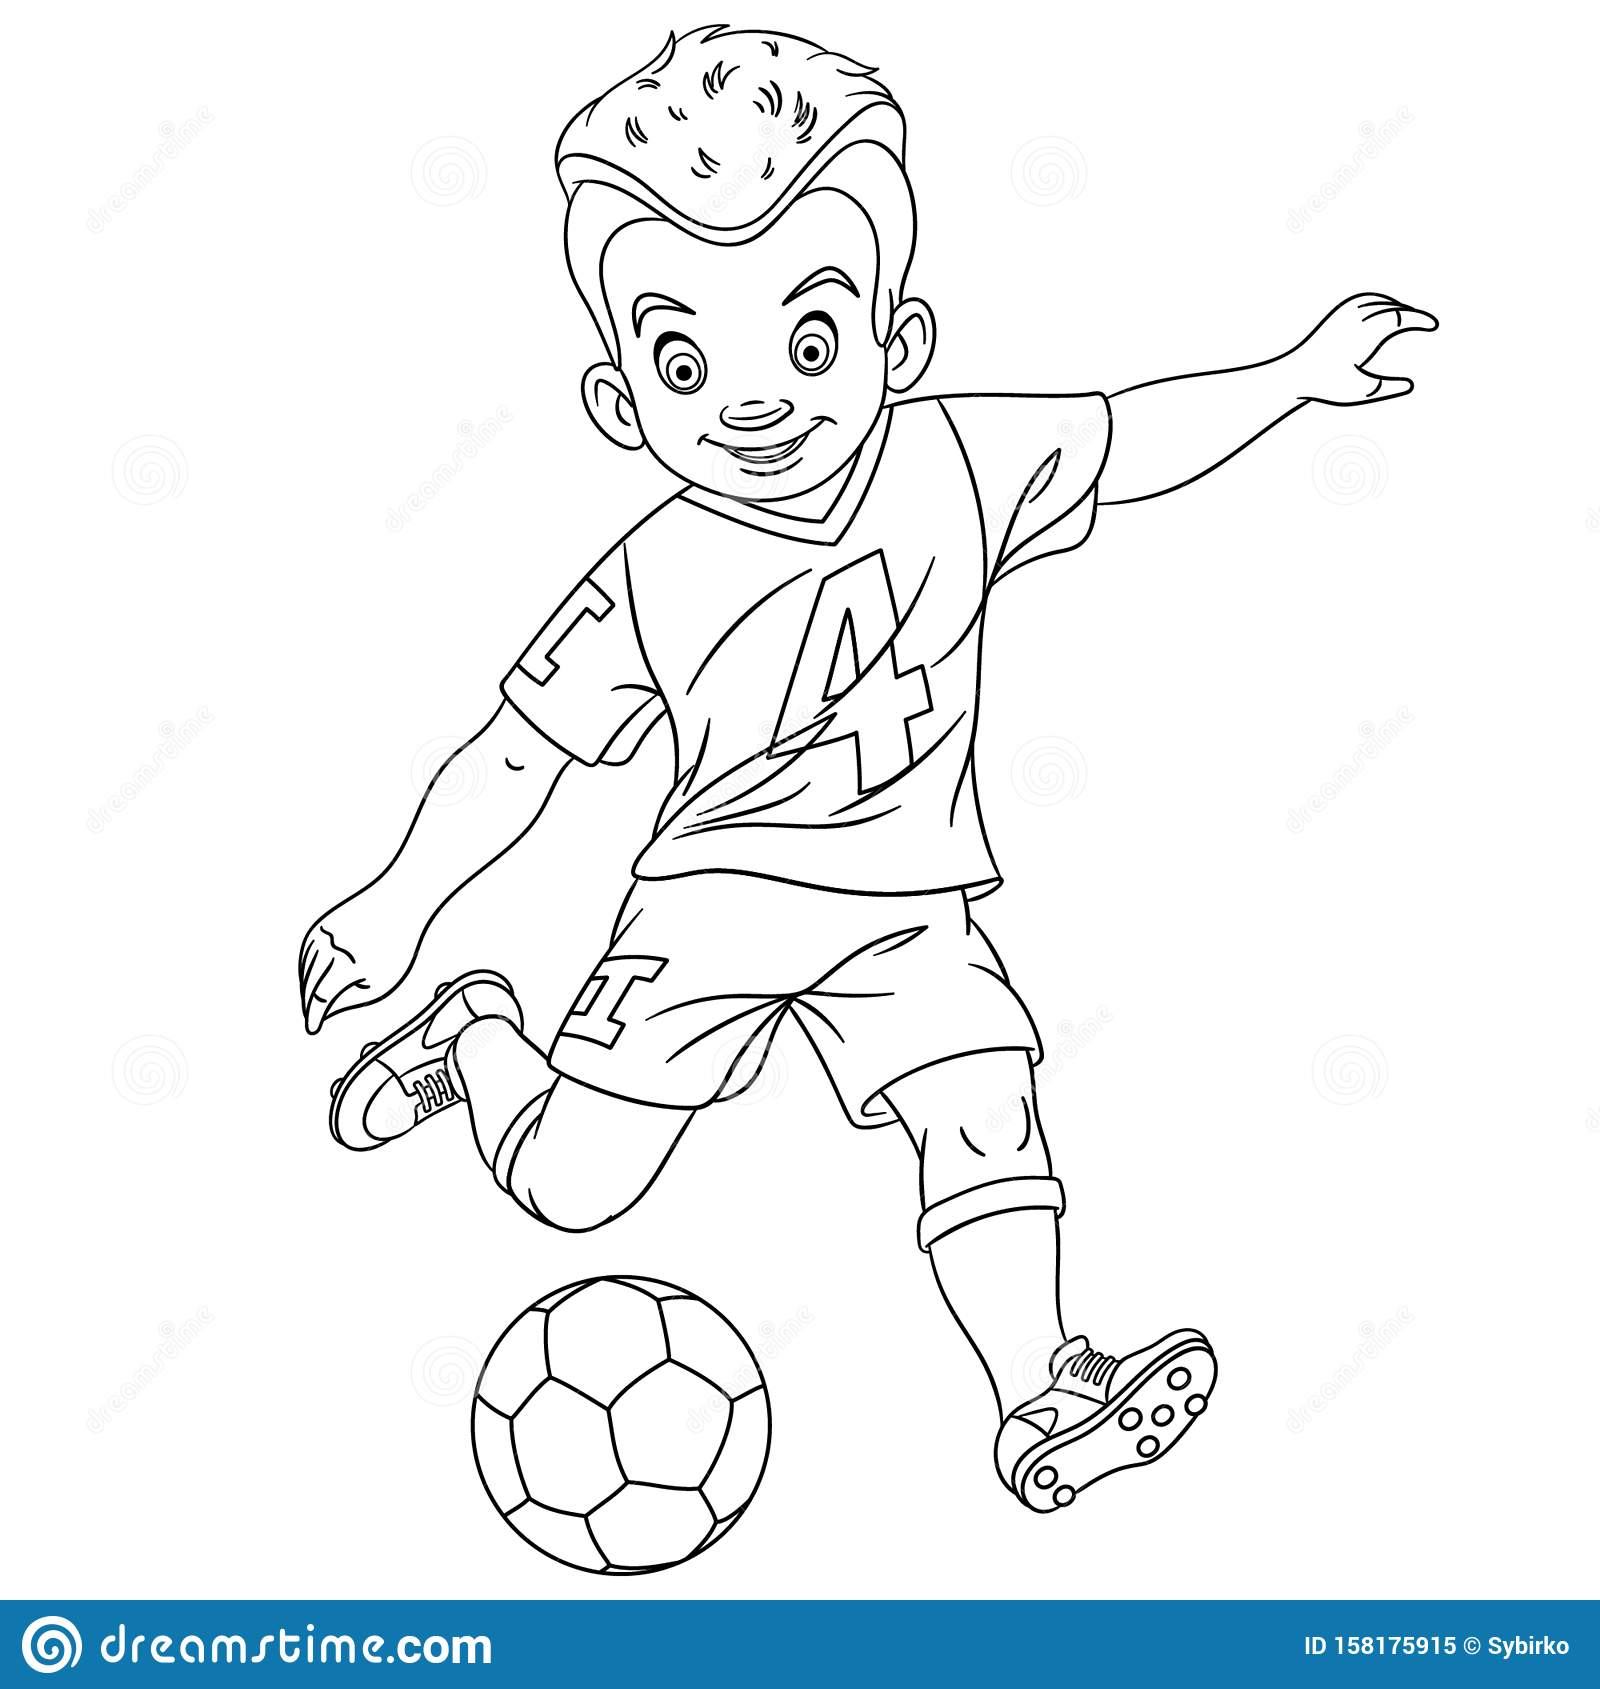 Coloring Page With Footballer Football Player Stock Vector Illustration Of Footballer Beautiful 158175915